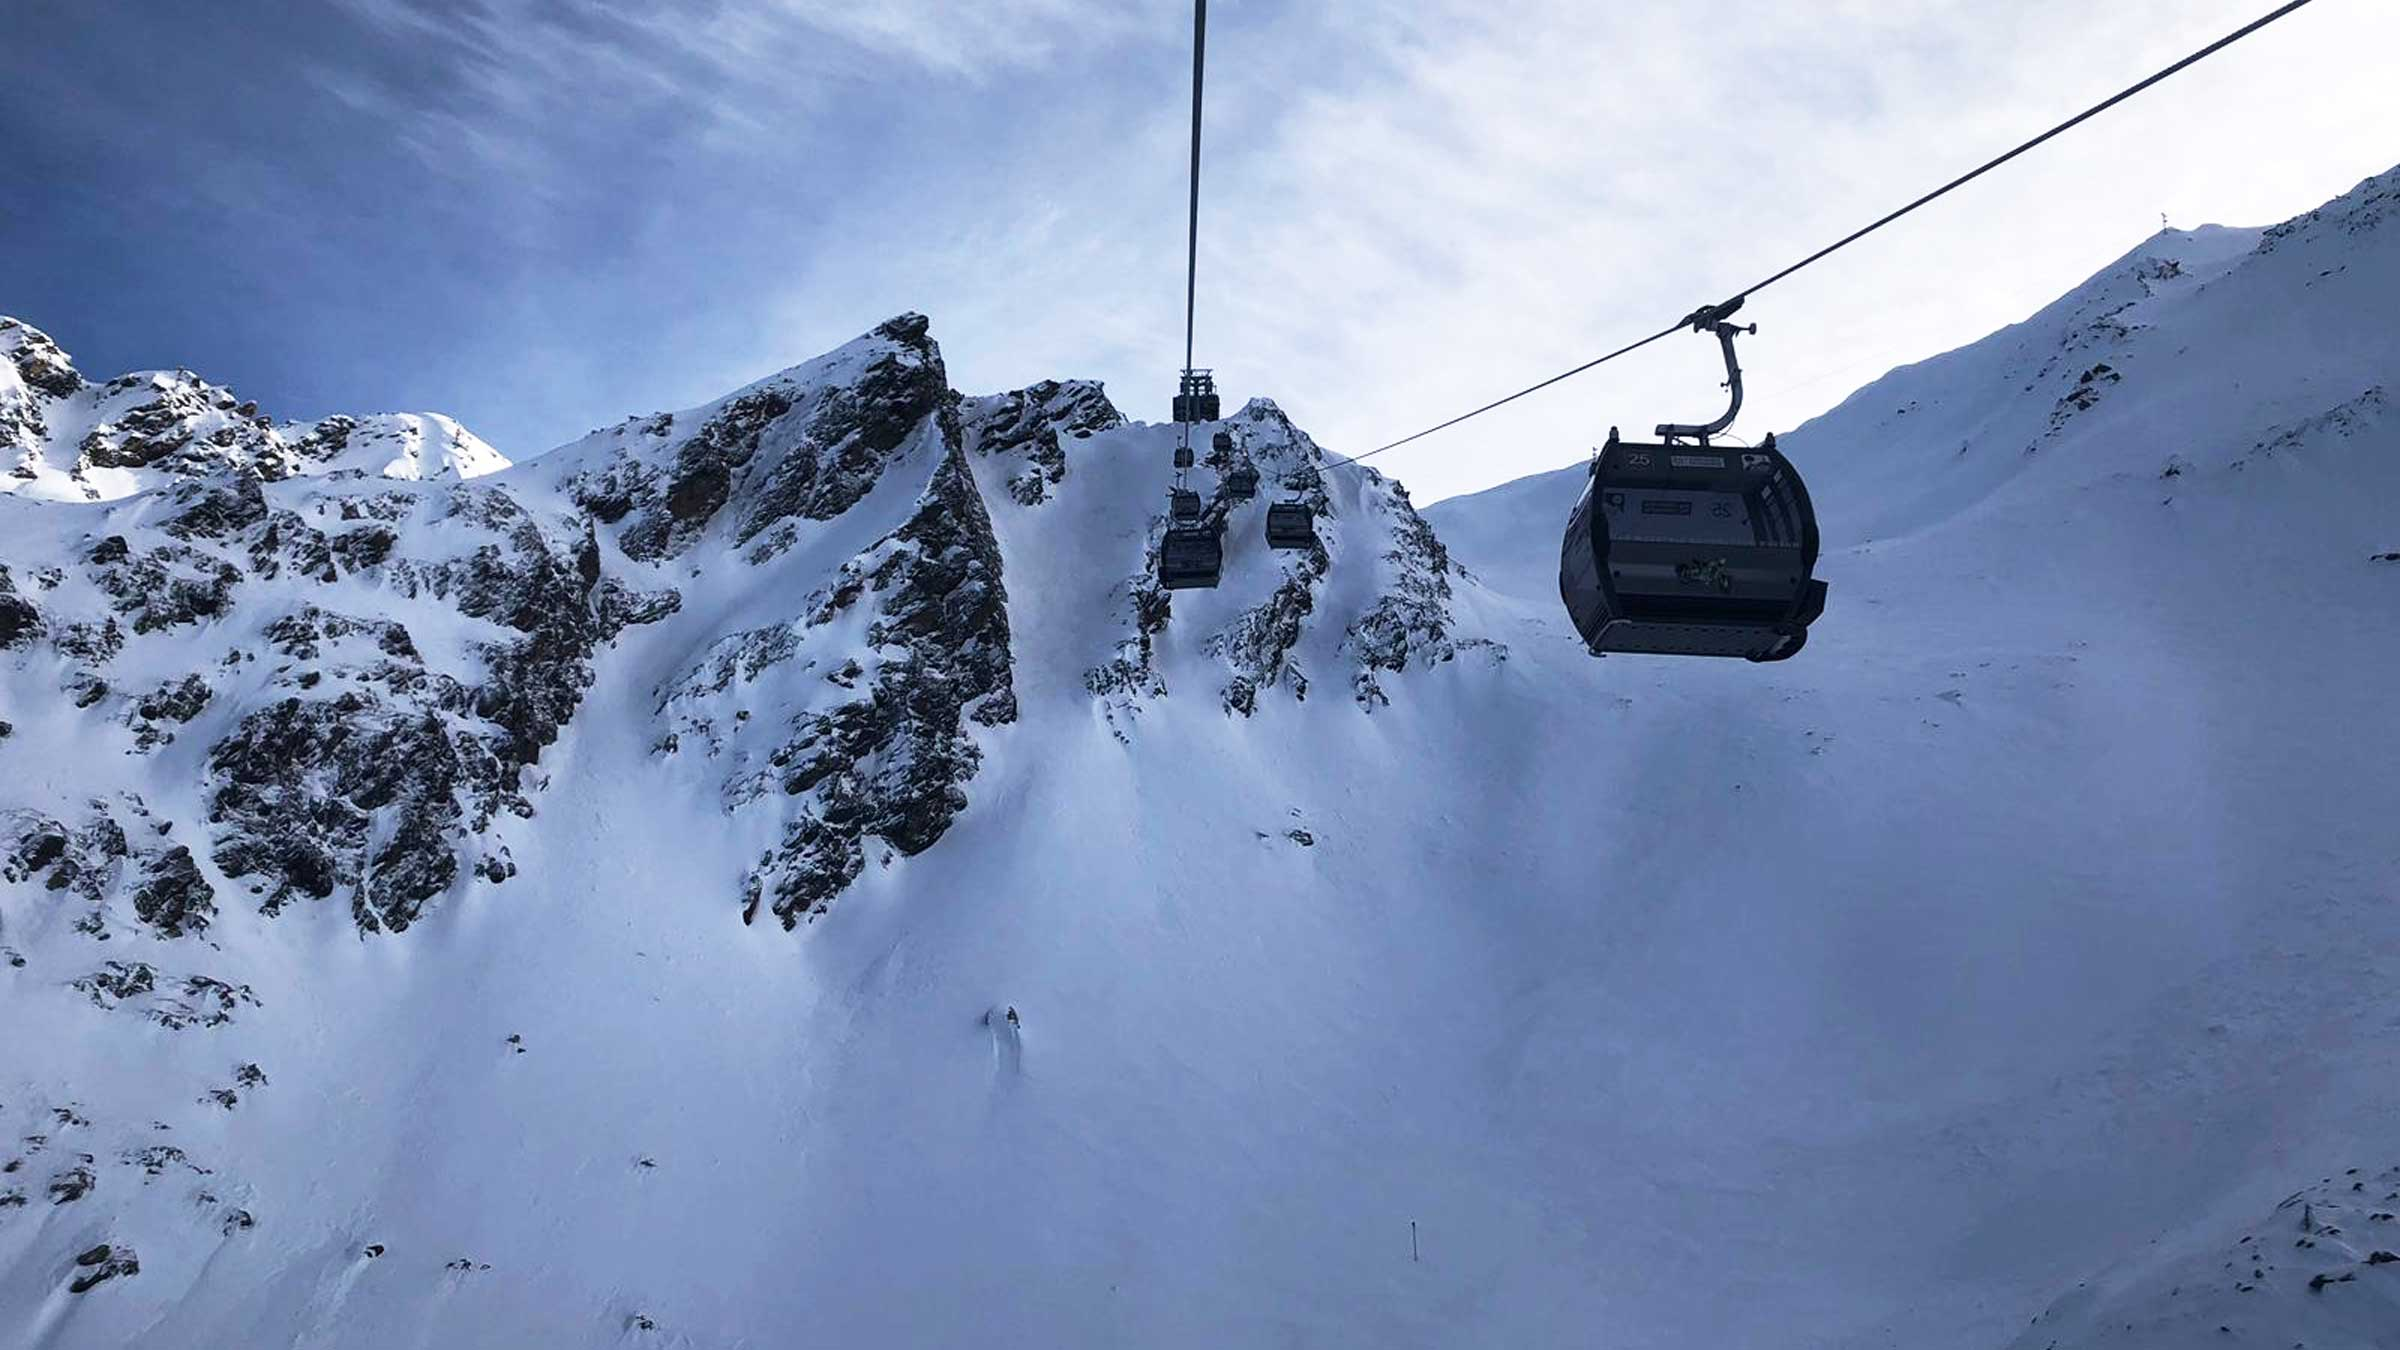 Hit the pristine slopes & powder stashes with the new Kirchenkar Mountain Gondola II